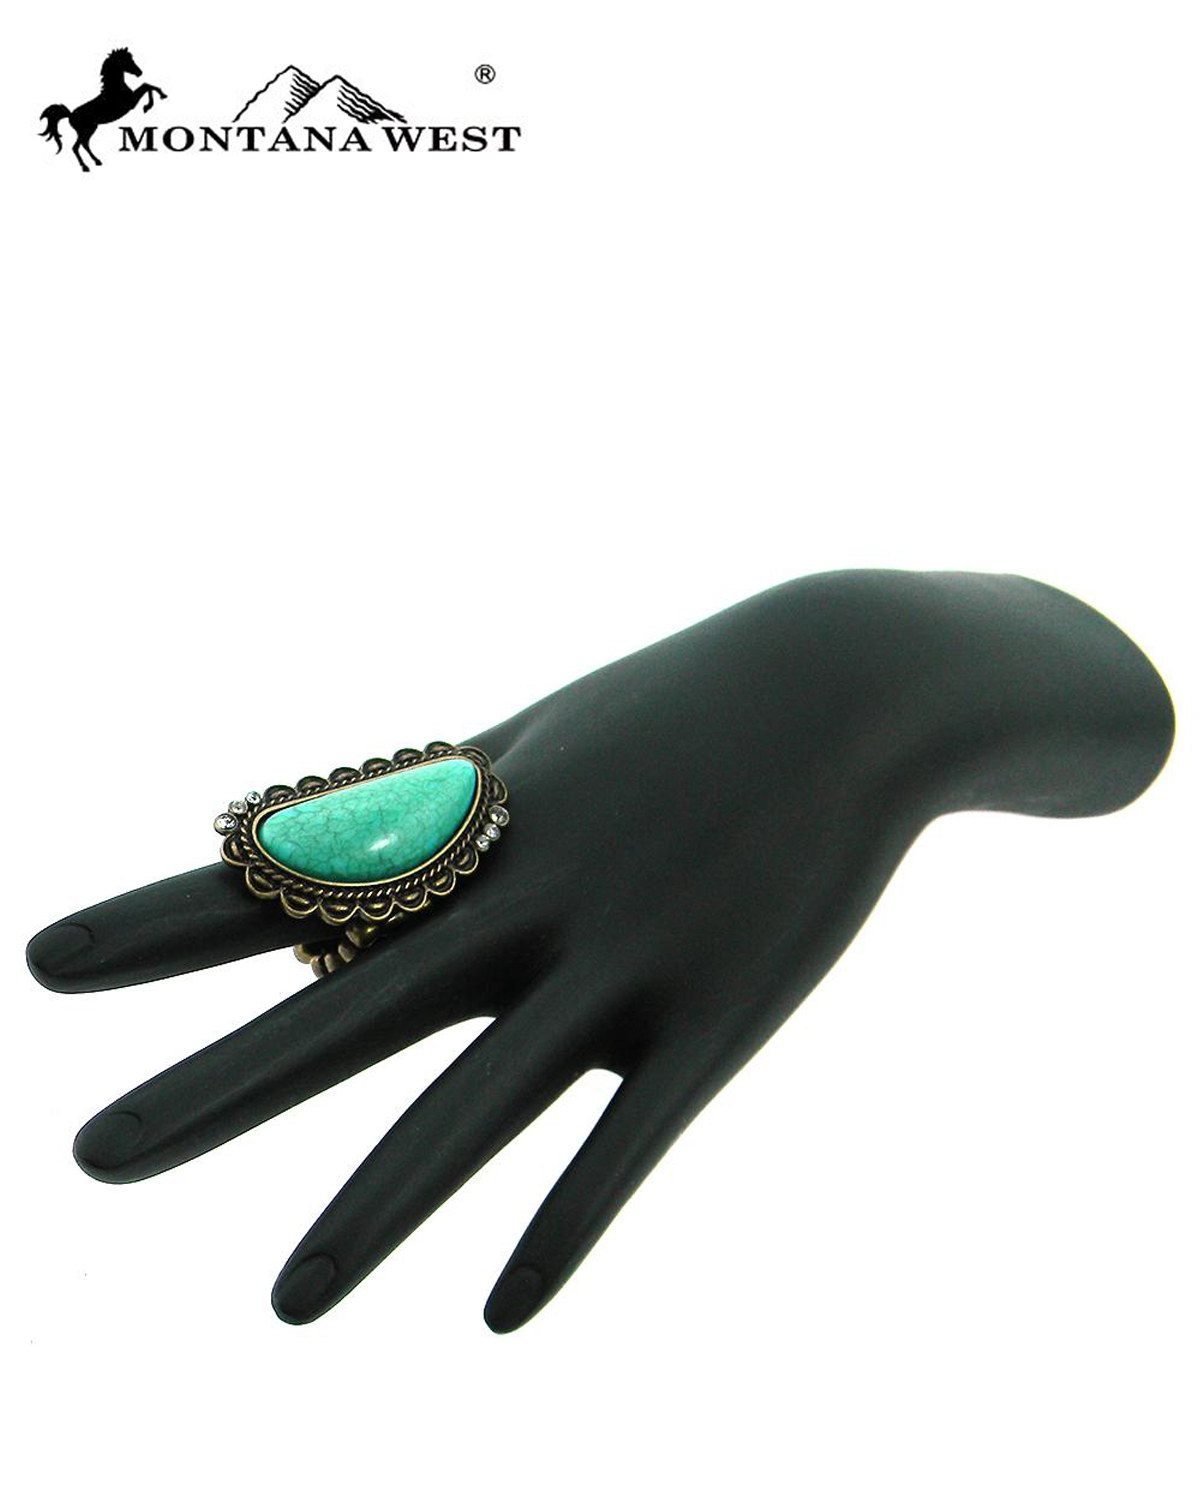 RGZ16092501(TQBR)-MW-wholesale-montana-west-ring-stretch-moon-style-turquoise-beads(0).jpg